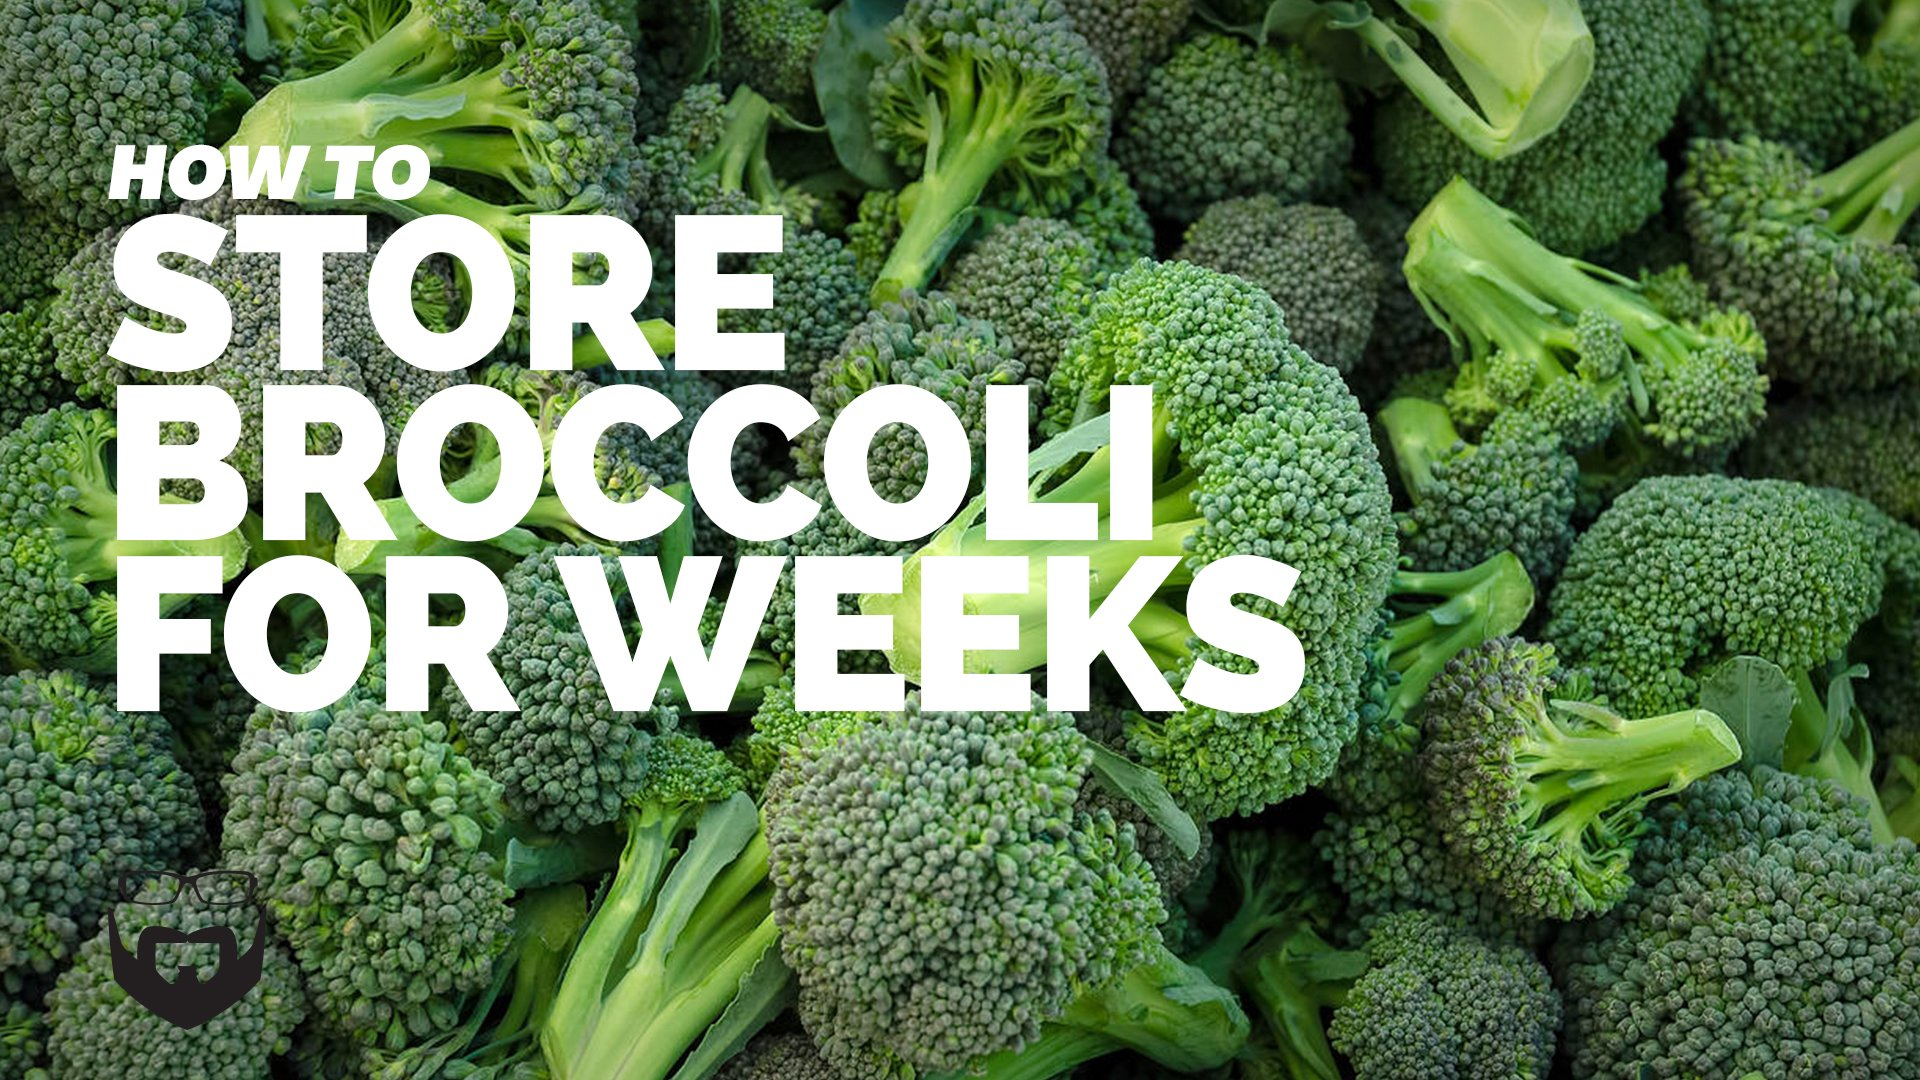 How to Store Broccoli for Weeks